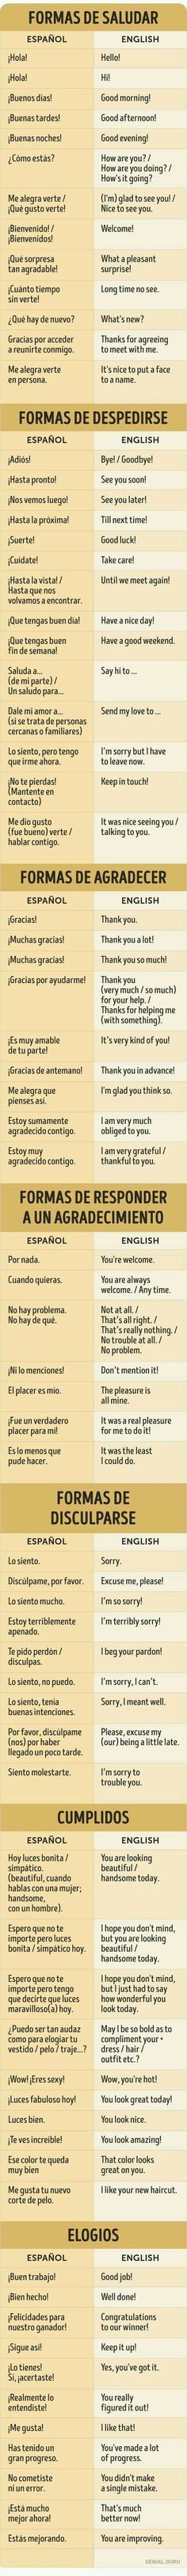 #saludos #ingles #learnspanishtips #spanishlessons #adultspanishlessons